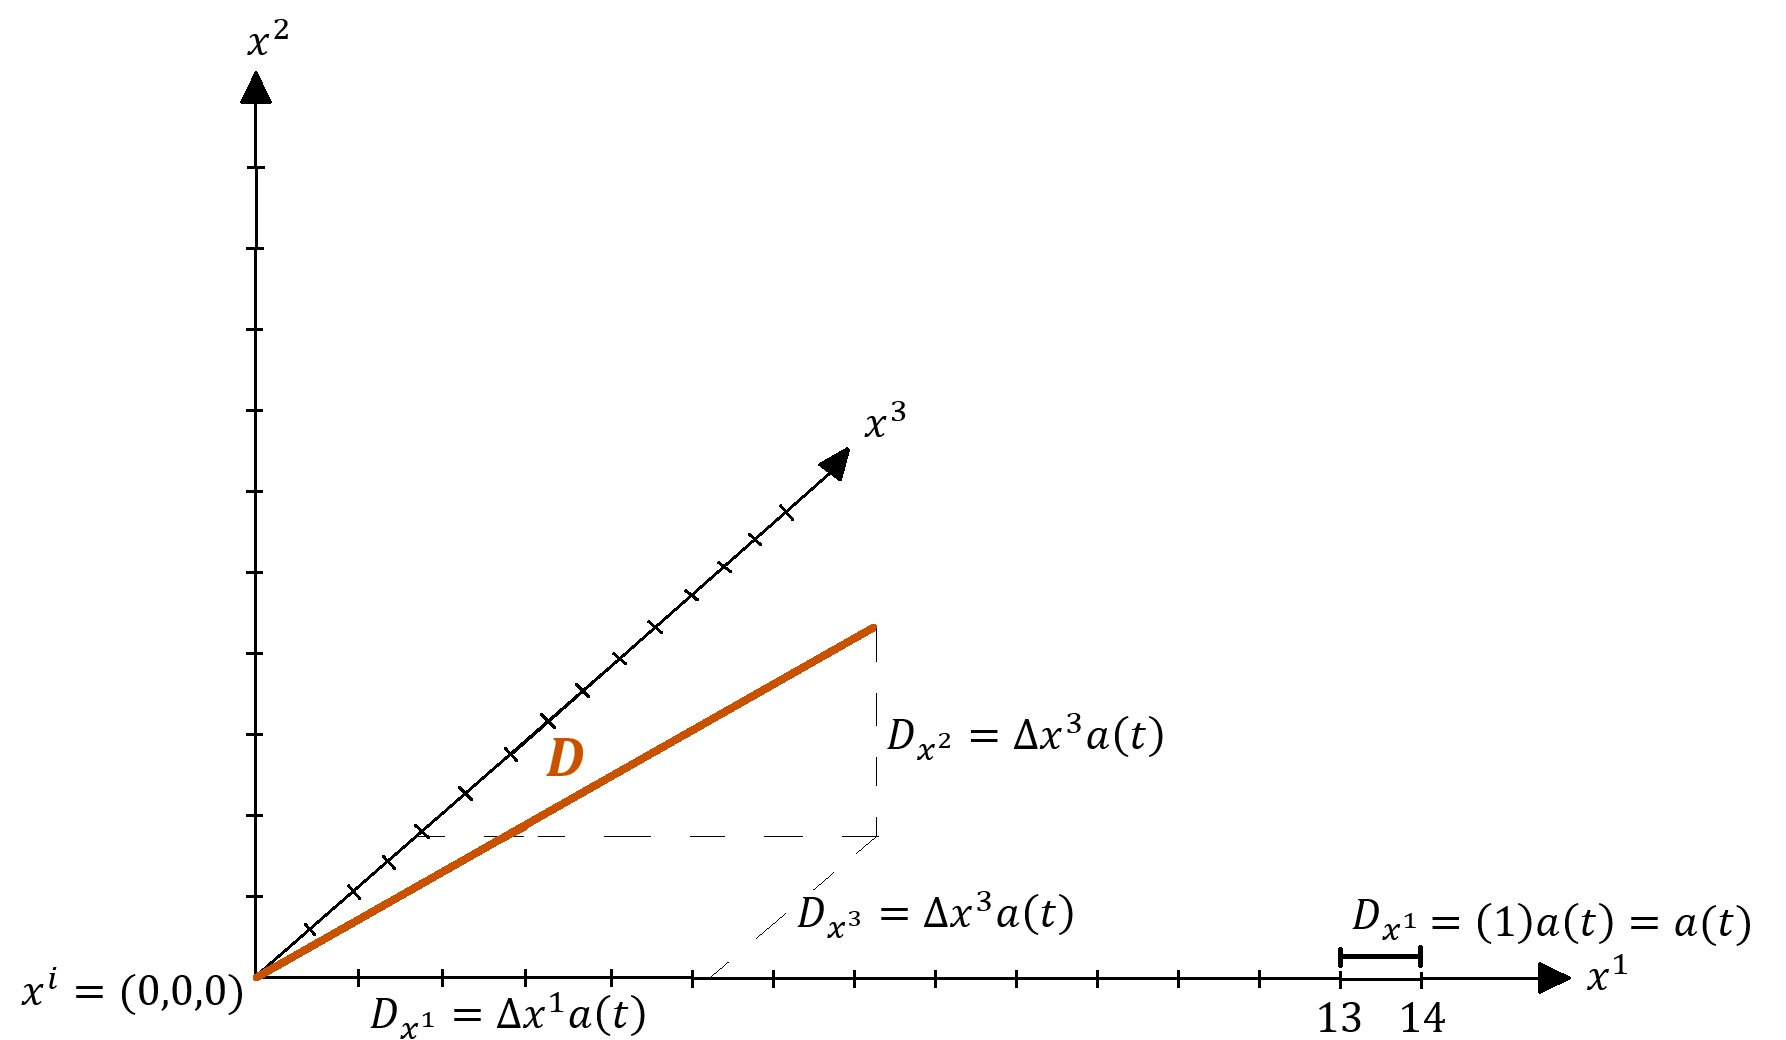 Figure 1: The coordinate value \(x^i\) assigned to each tick mark in the rectangular coordinate system above remains the same as the coordinate system stretches or contracts. Only the scaling factor \(a(t)\) changes when the coordinate system stretches or contracts.